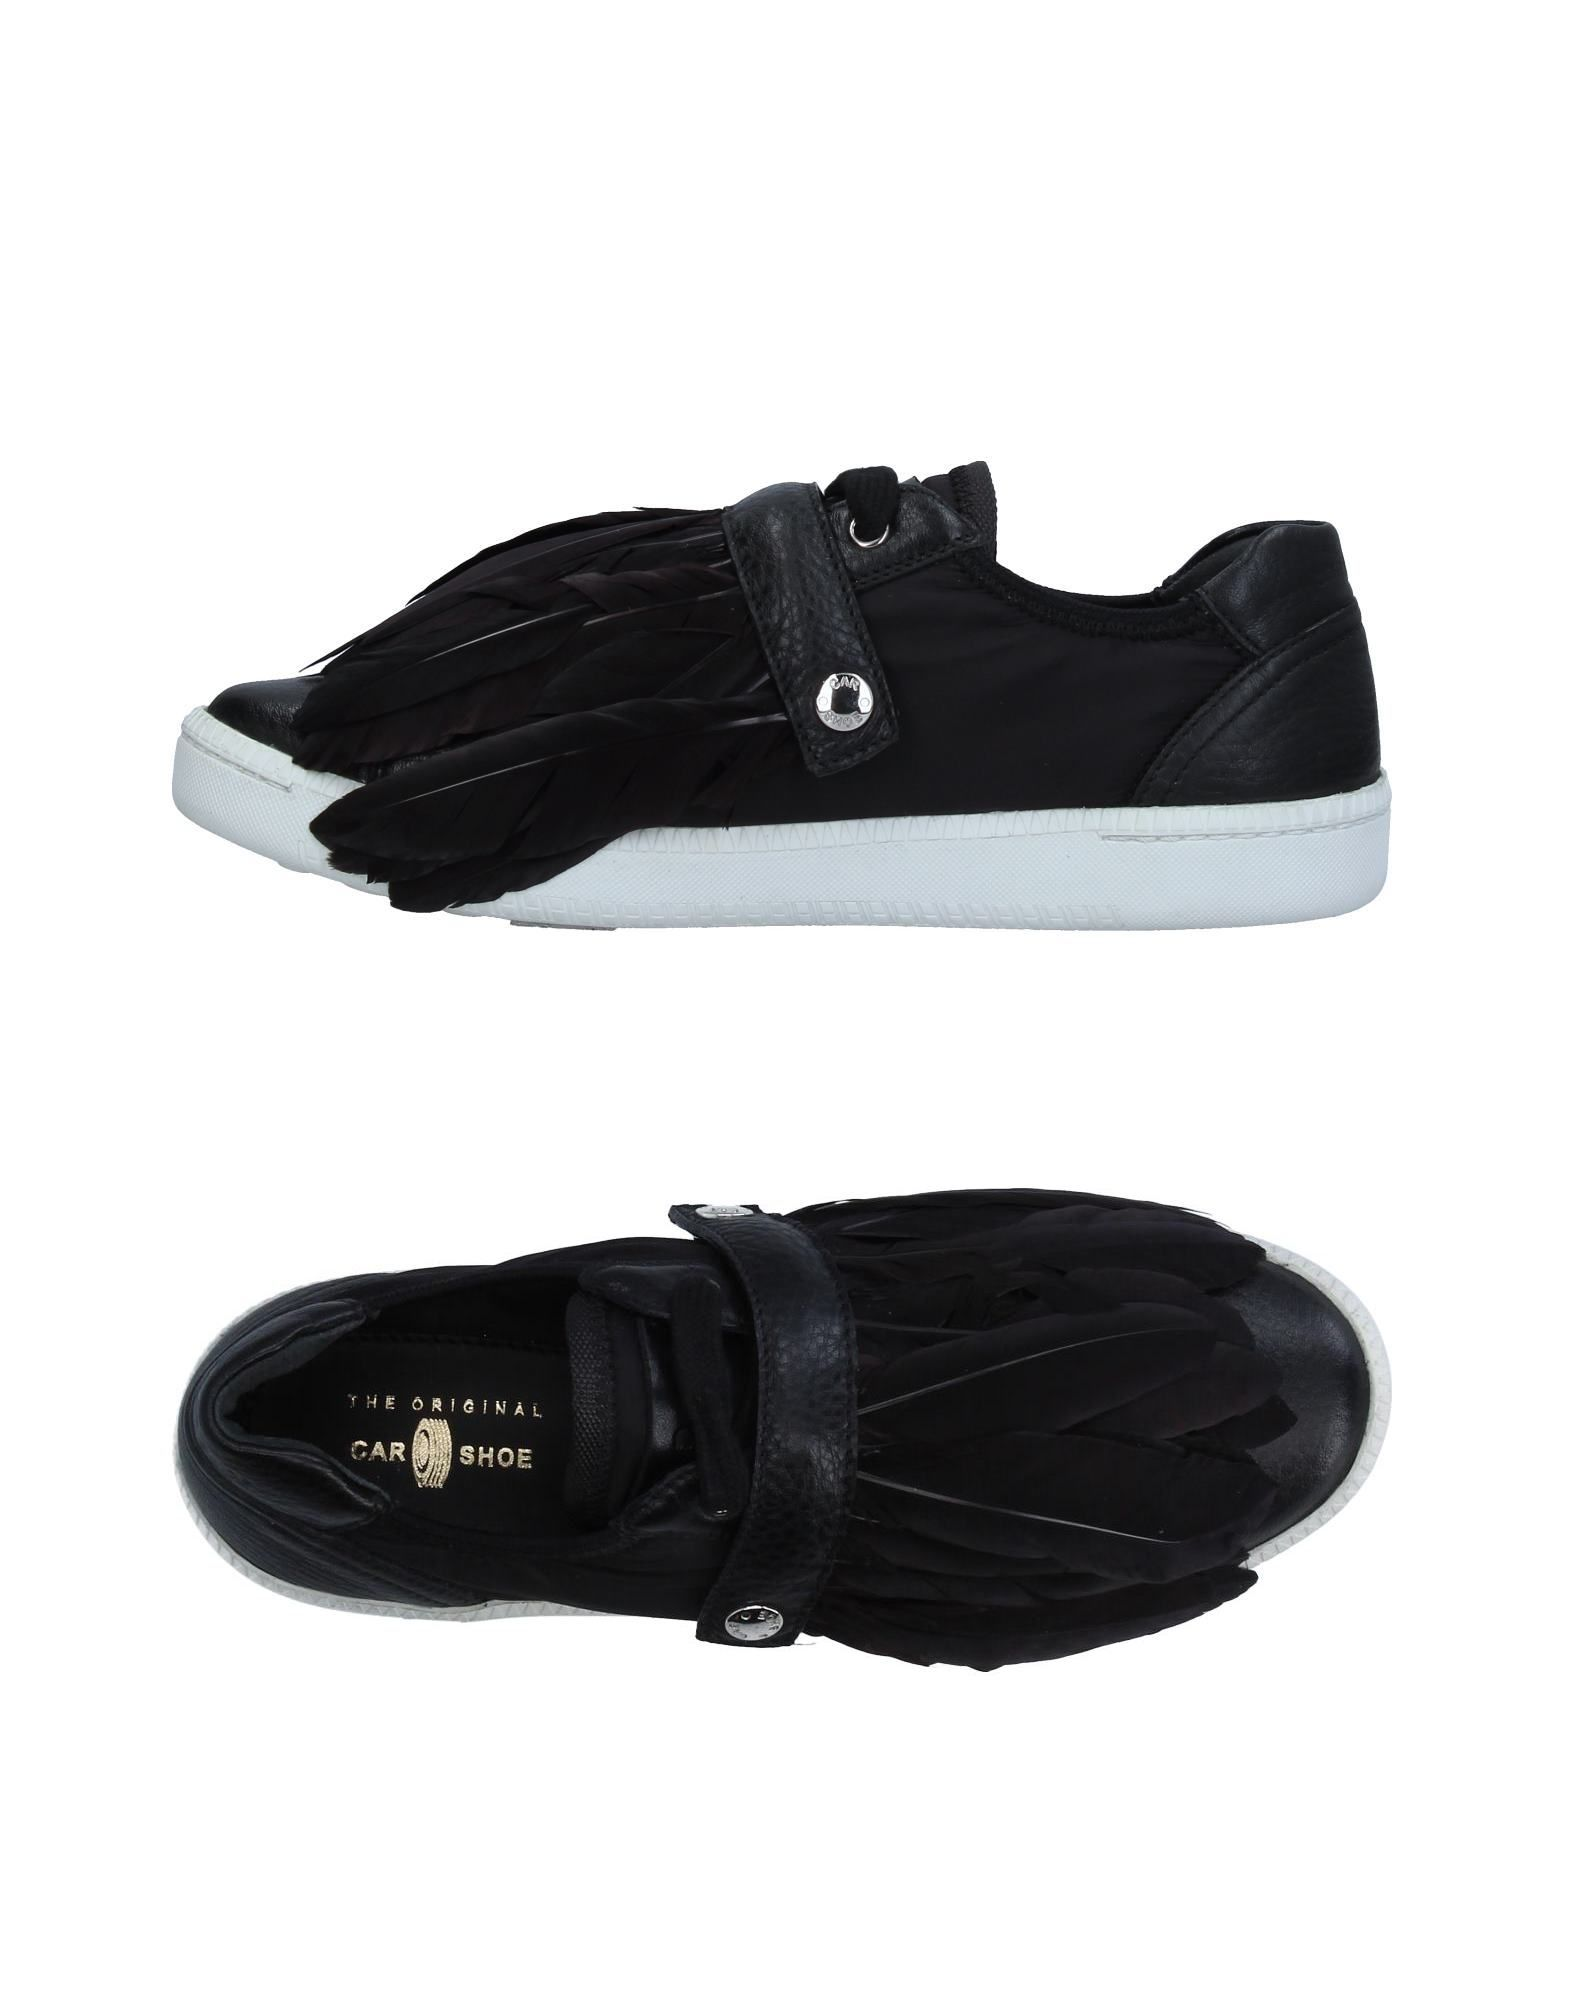 Sneakers Carshoe Donna - Acquista online su